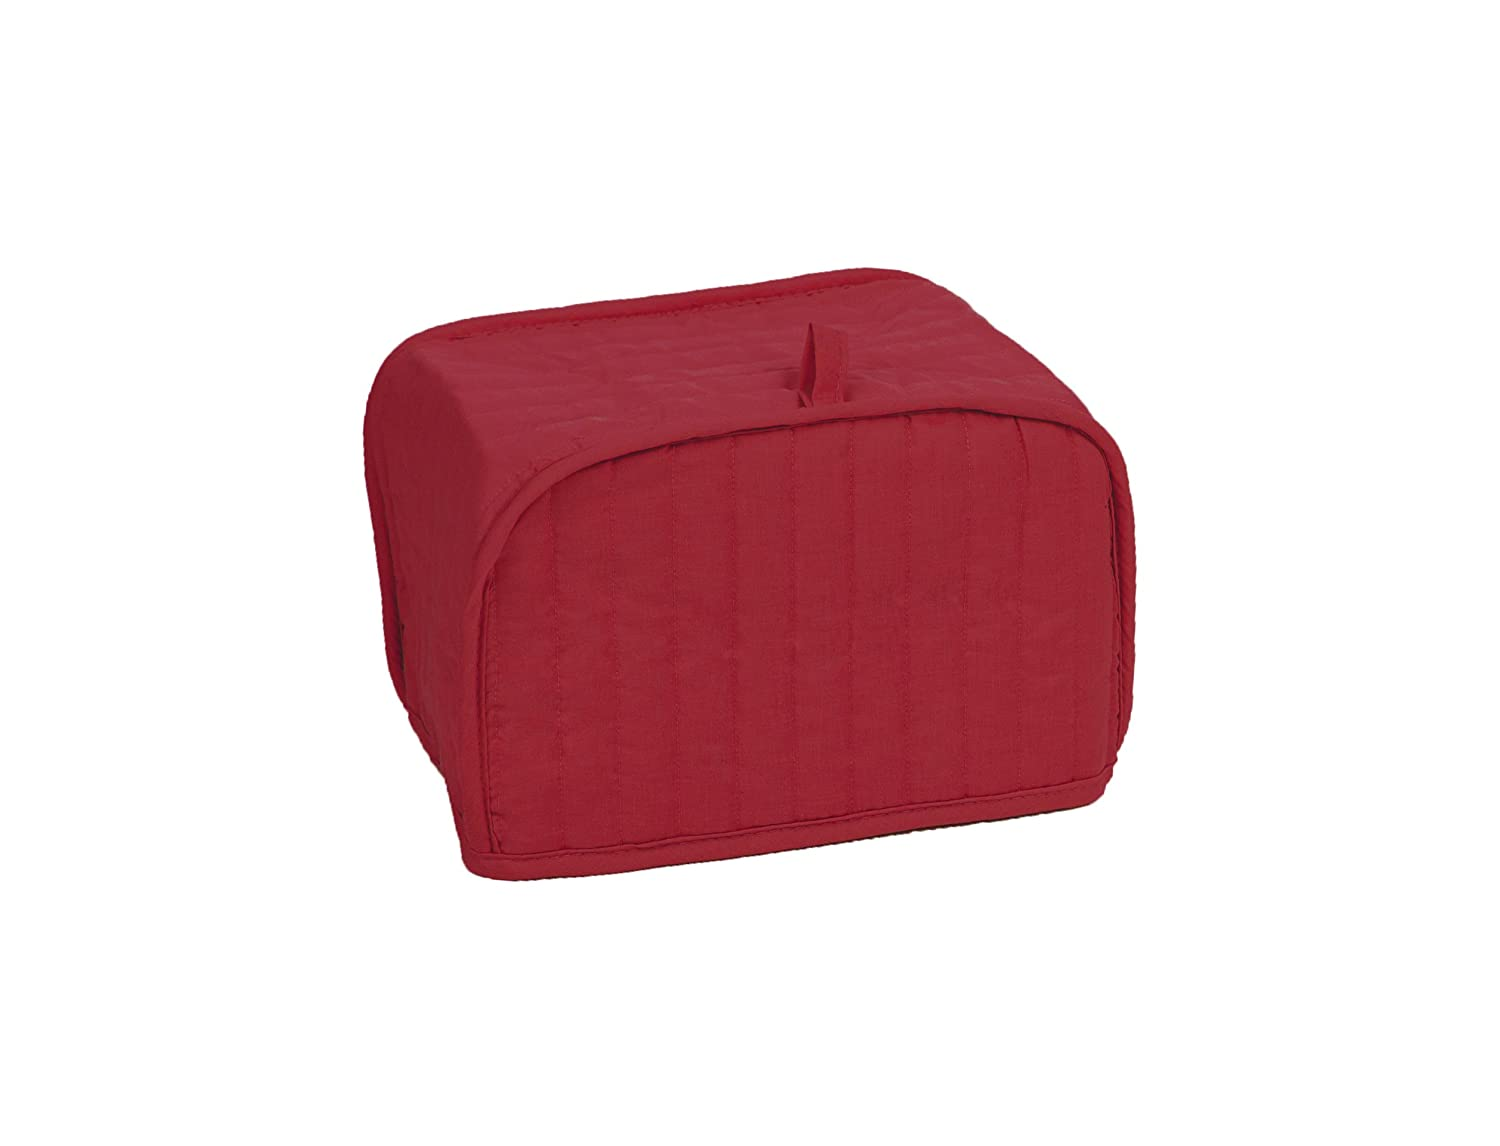 RITZ Polyester / Cotton Quilted Four Slice Toaster Appliance Cover, Dust and Fingerprint Protection, Machine Washable, Paprika Red